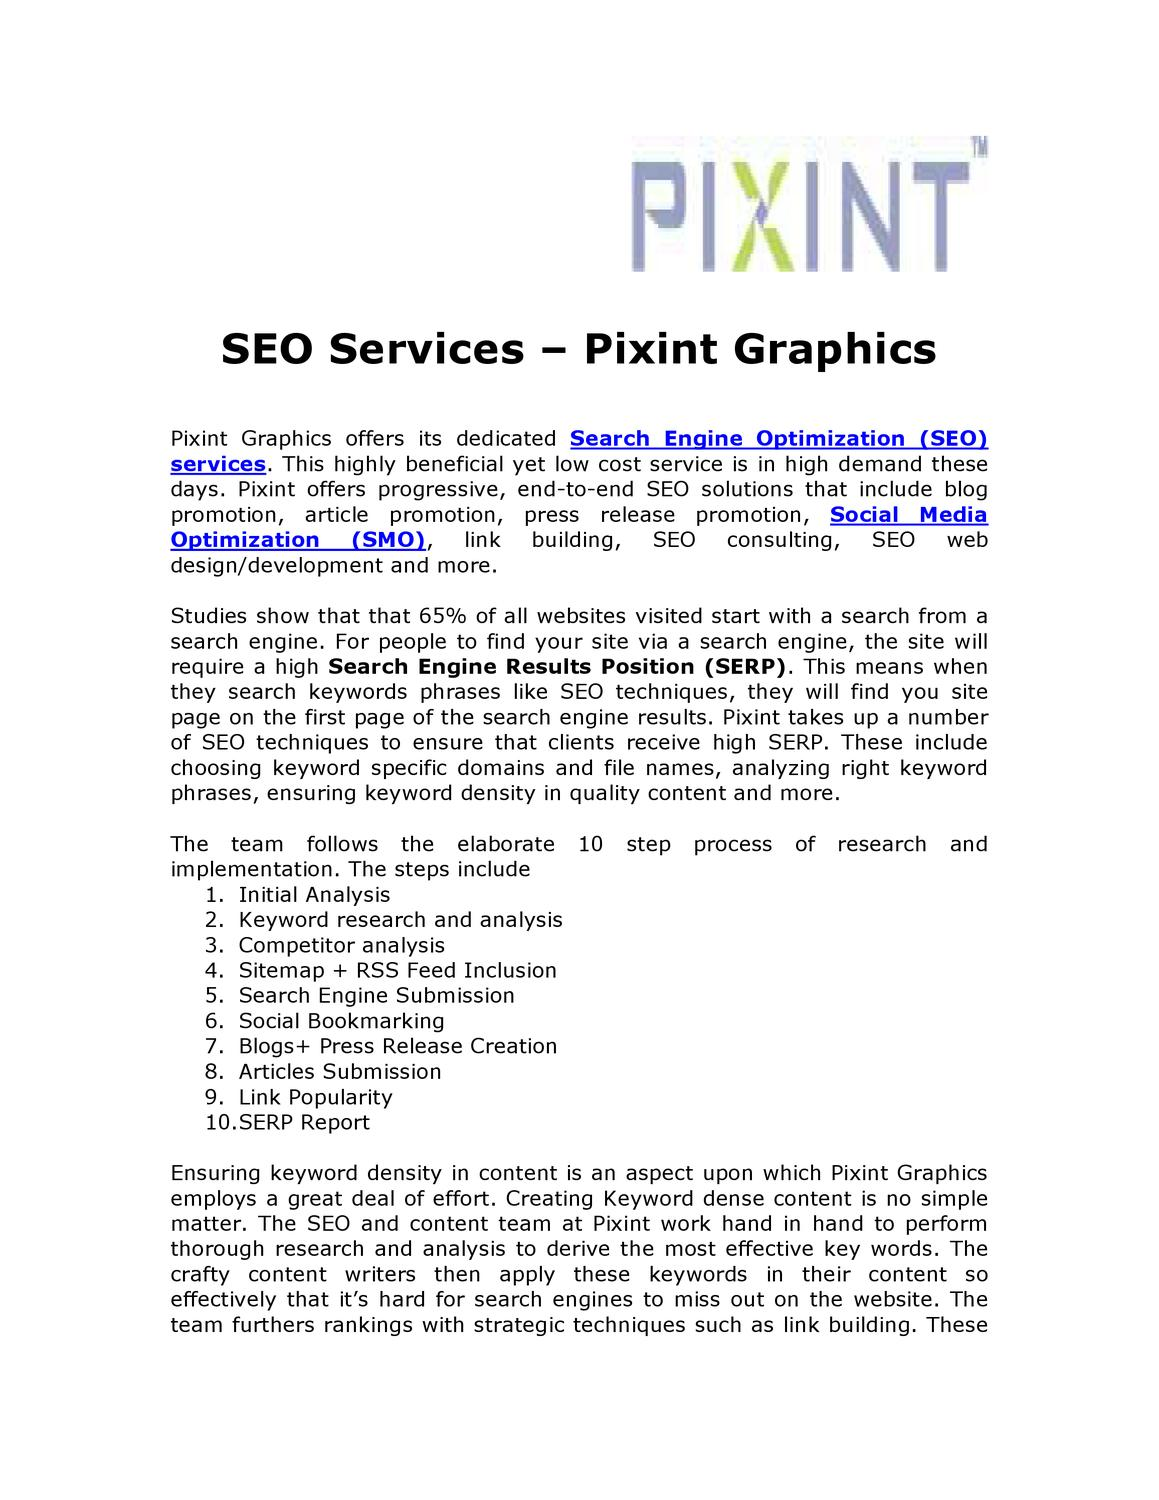 Search Engine Optimization (SEO) Services - Pixint by